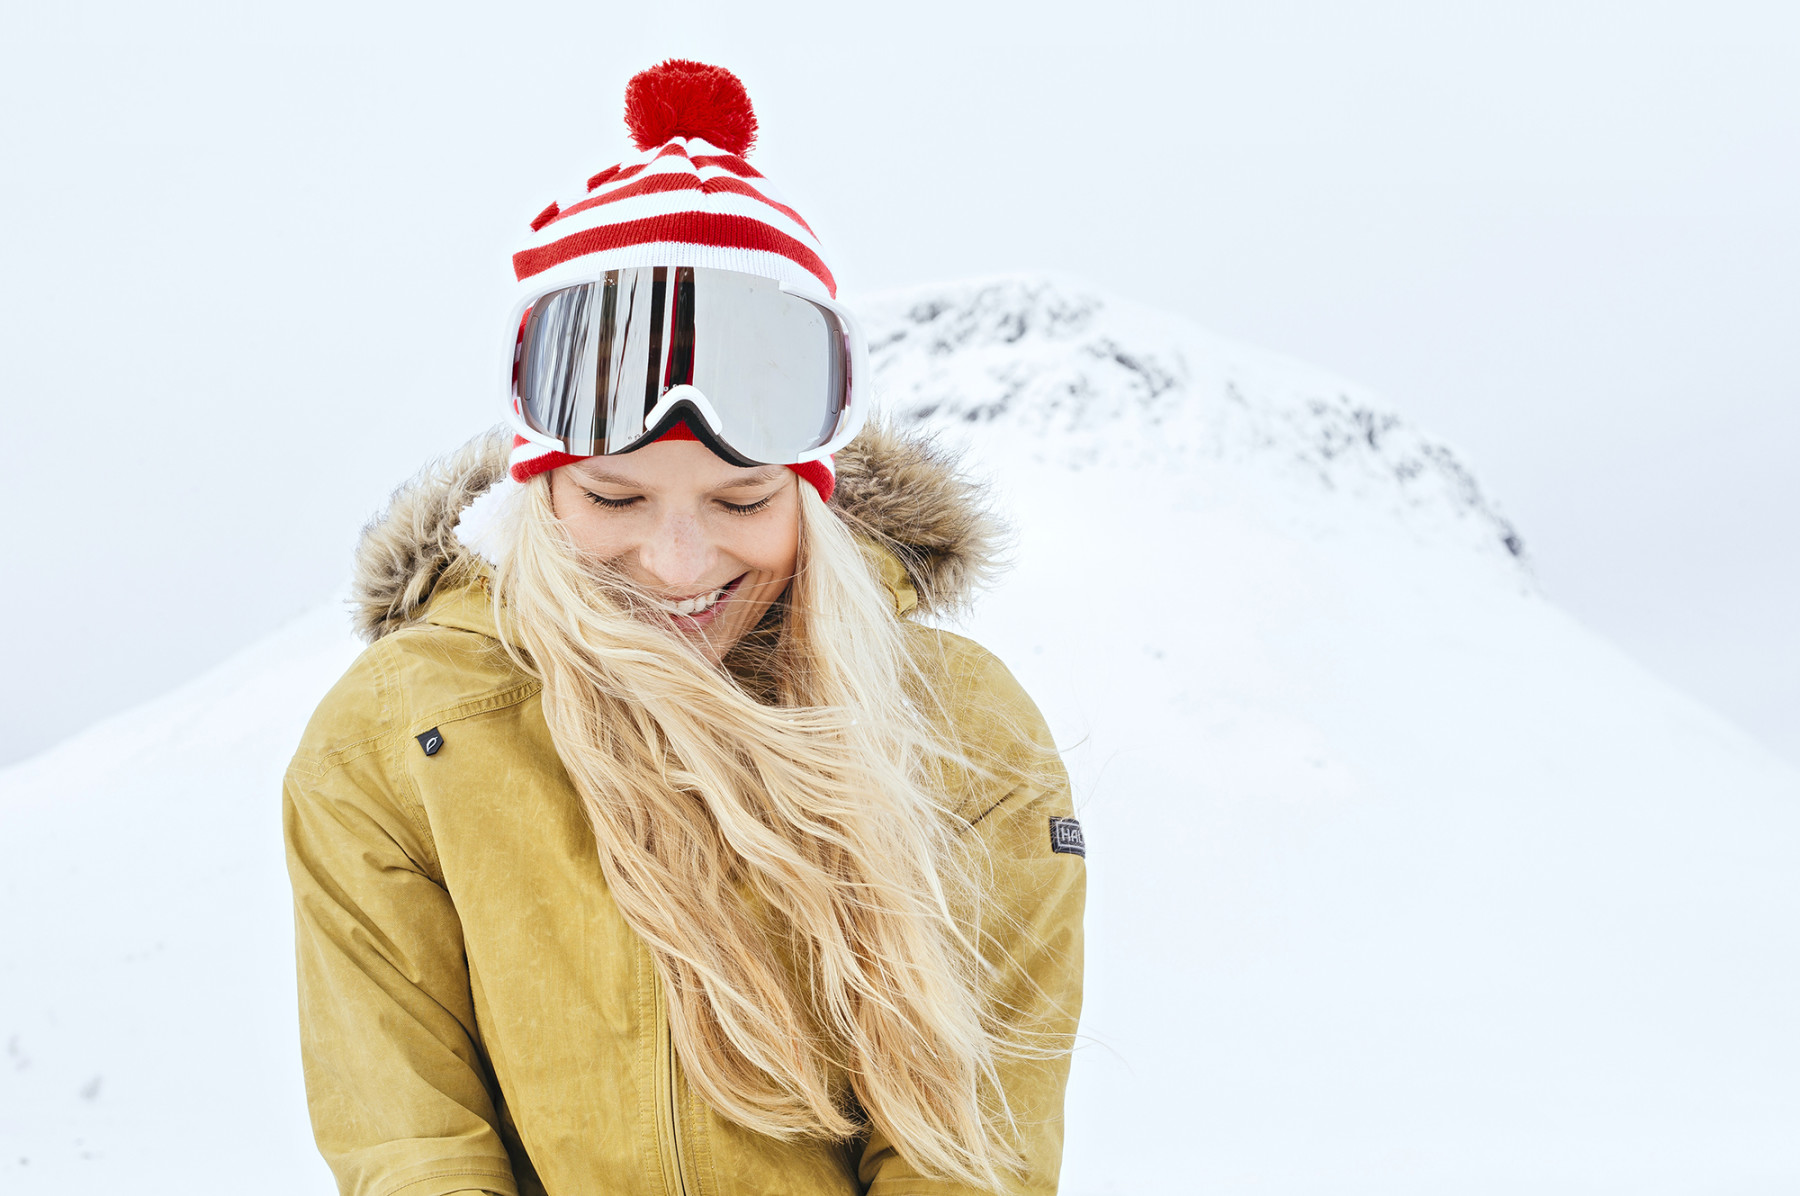 """a1dde6caf48 There s a hat for that  Finland s shiny happy """"pipo"""" people ..."""